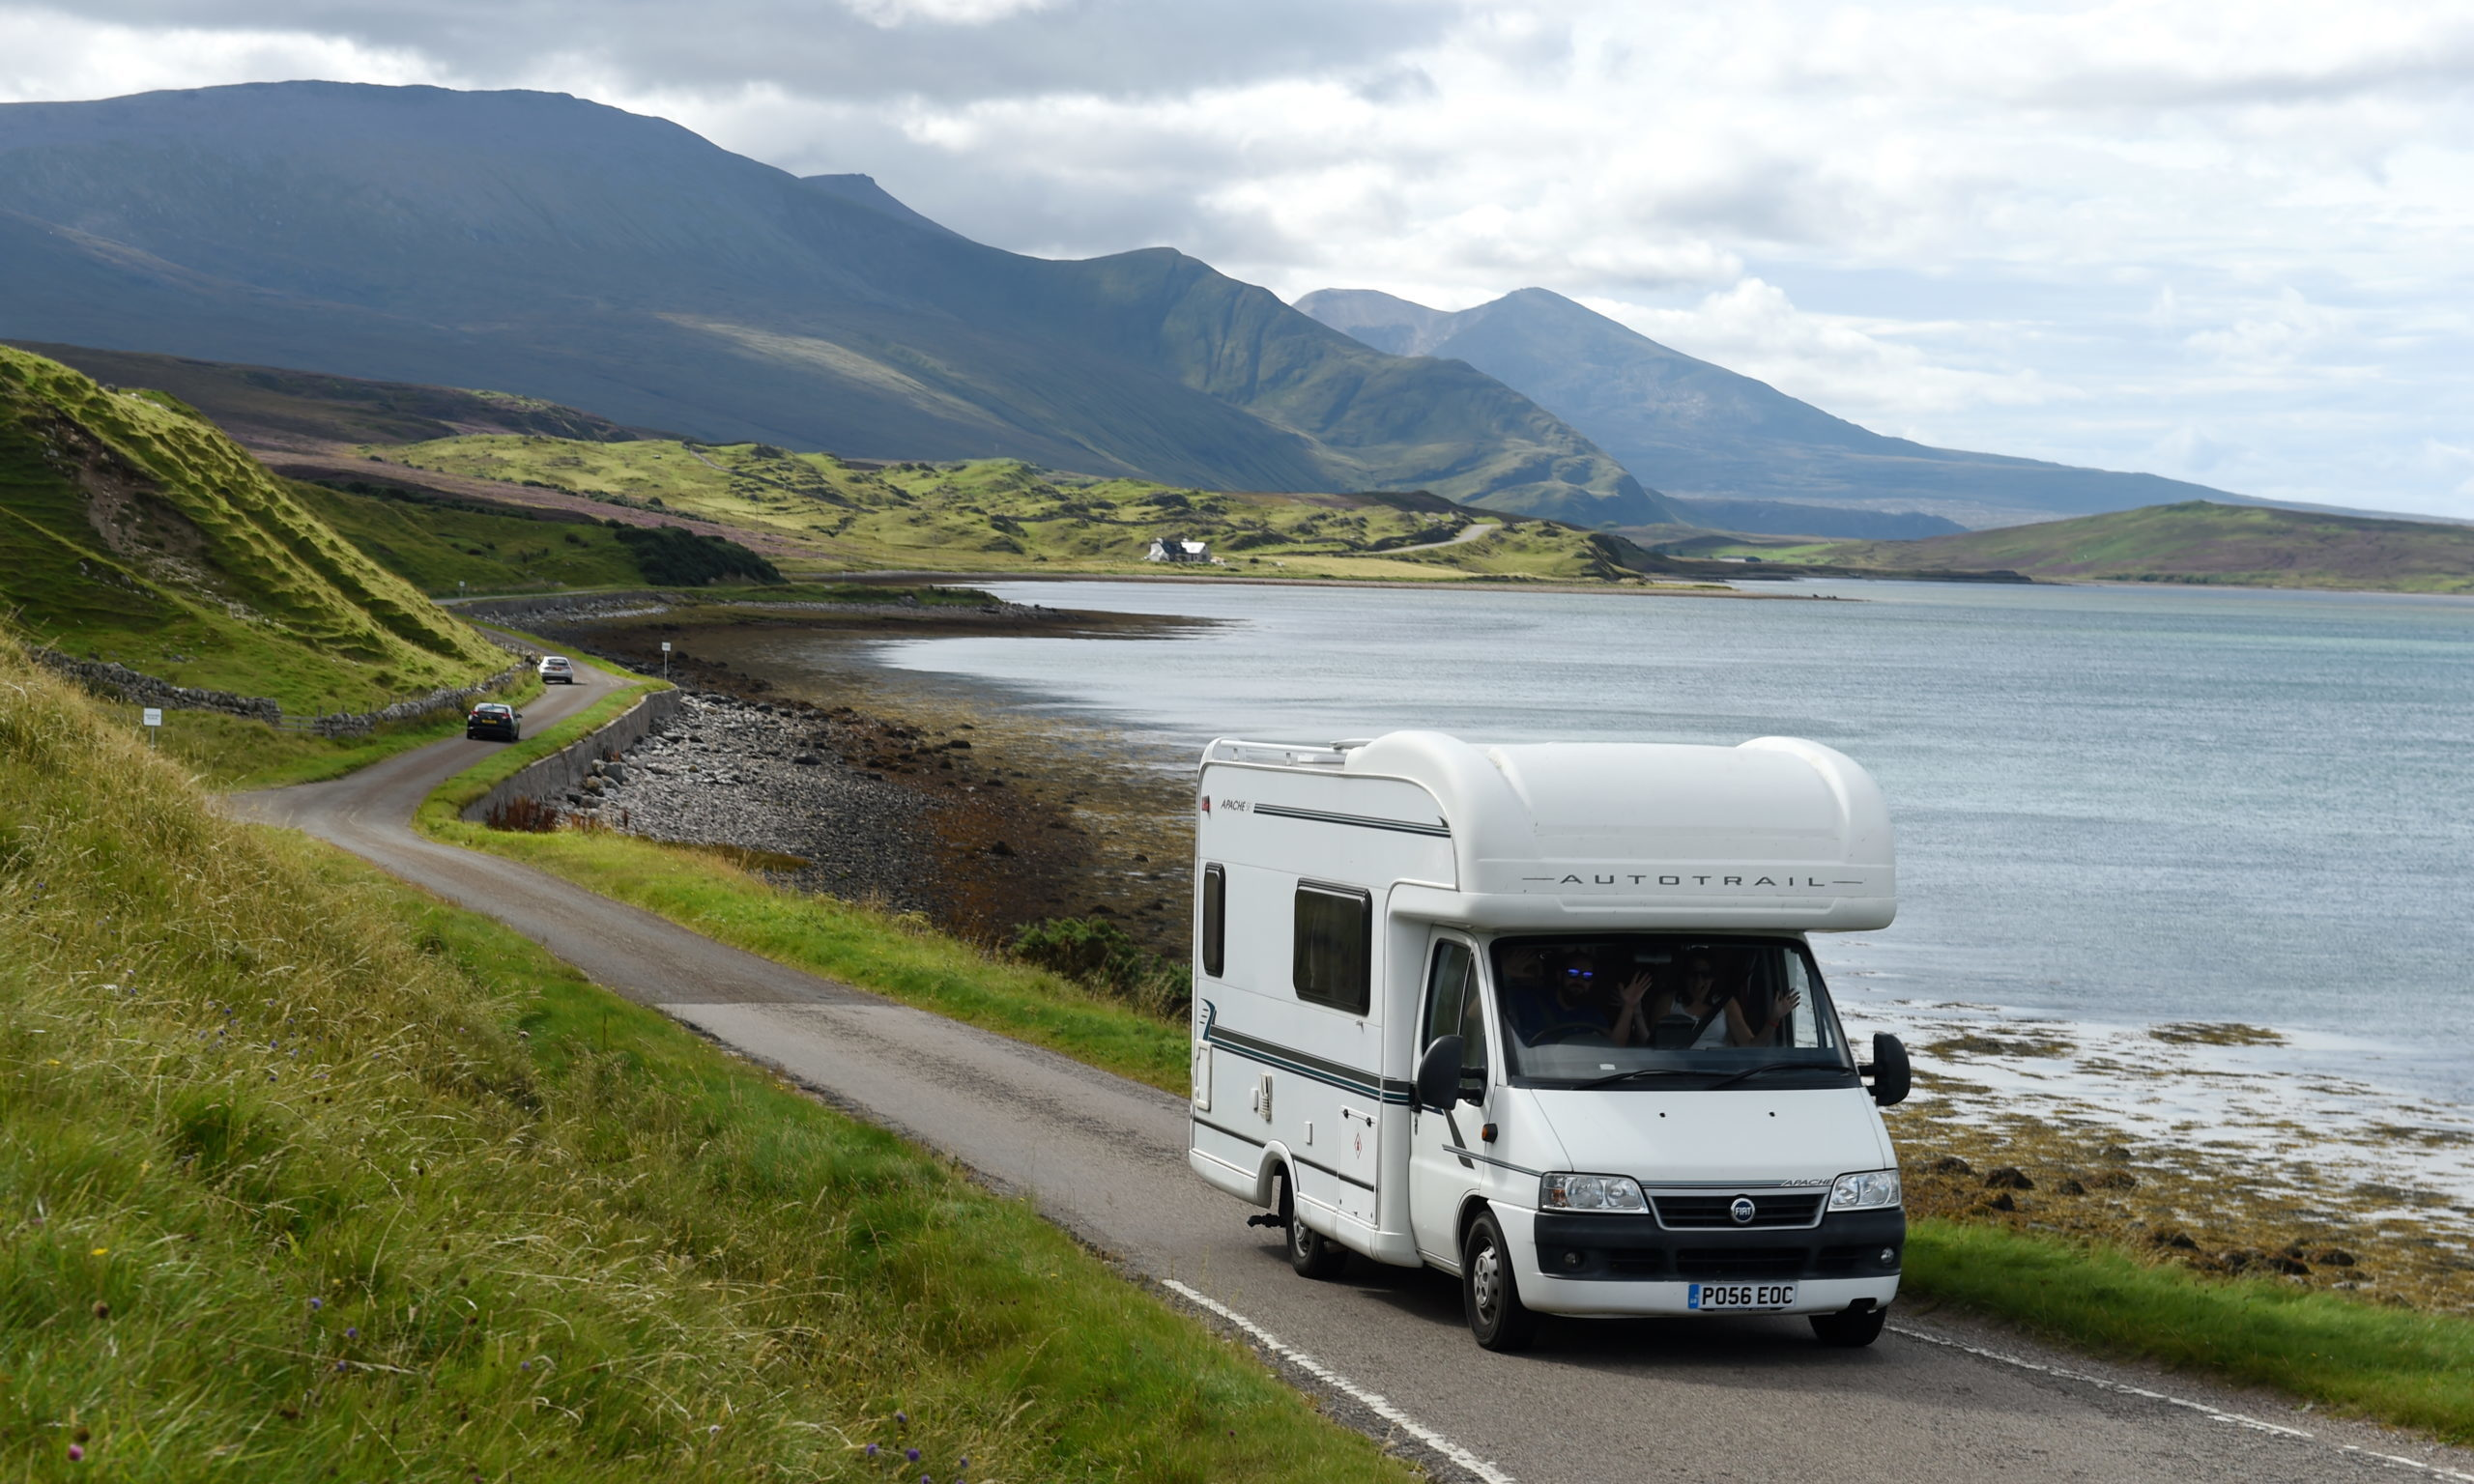 Picture by SANDY McCOOK  25th August '20 CR0023008   Motorhomes on the single track road alongside the Kyle of Durness in Sutherland, part of the NC500. Wild and 'Dirty Camping' problems in Northwest Sutherland, particularly the Durness area.